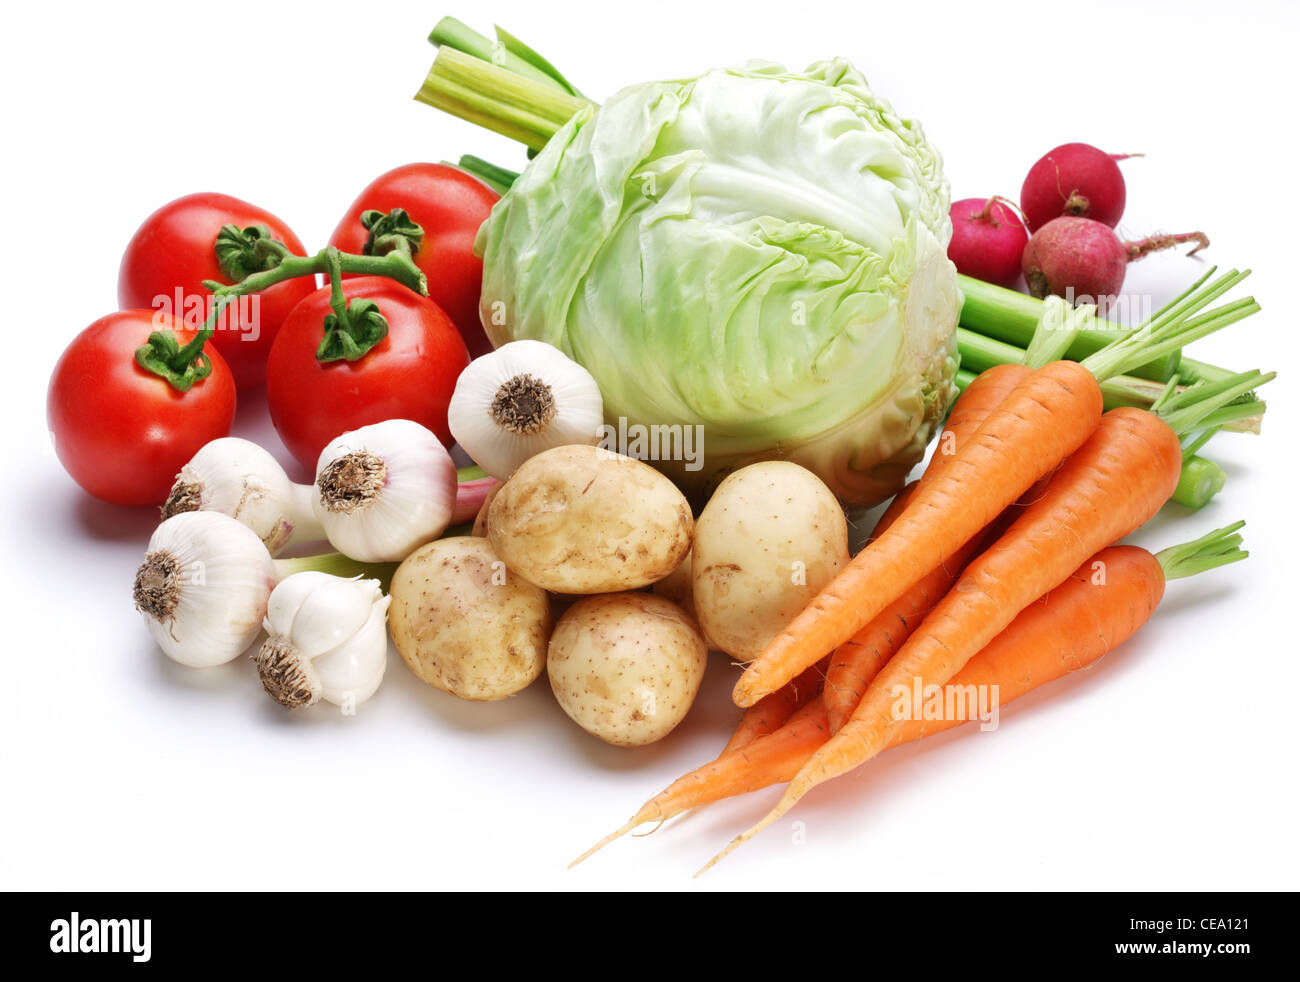 vegetables on white background - Stock Image